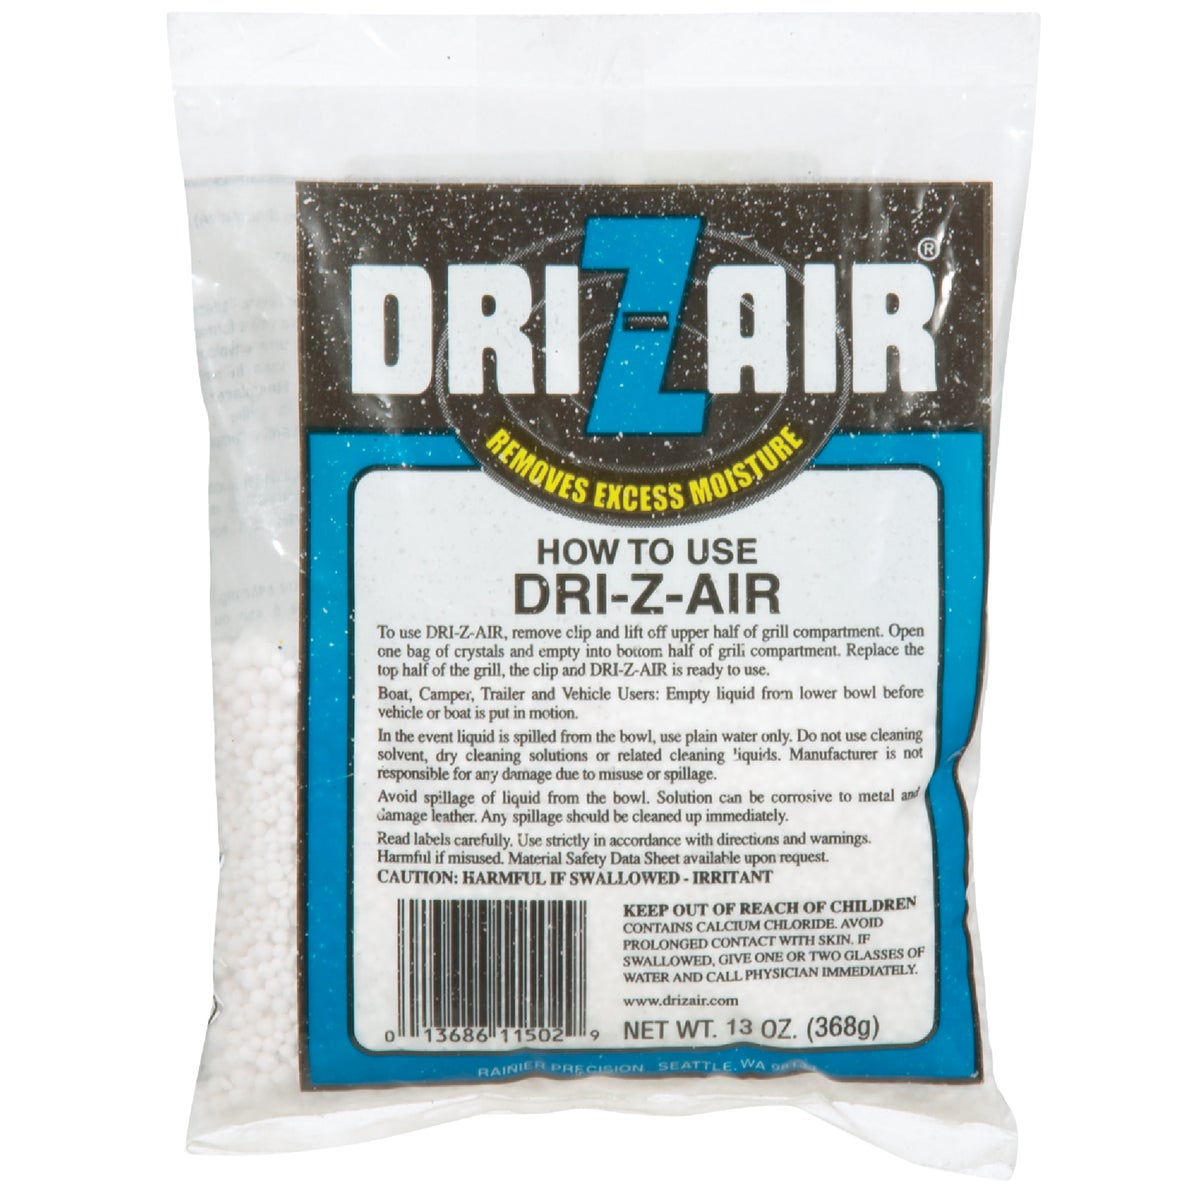 DRI-Z-AIR CRYSTALS - 502 by Rainier Precision